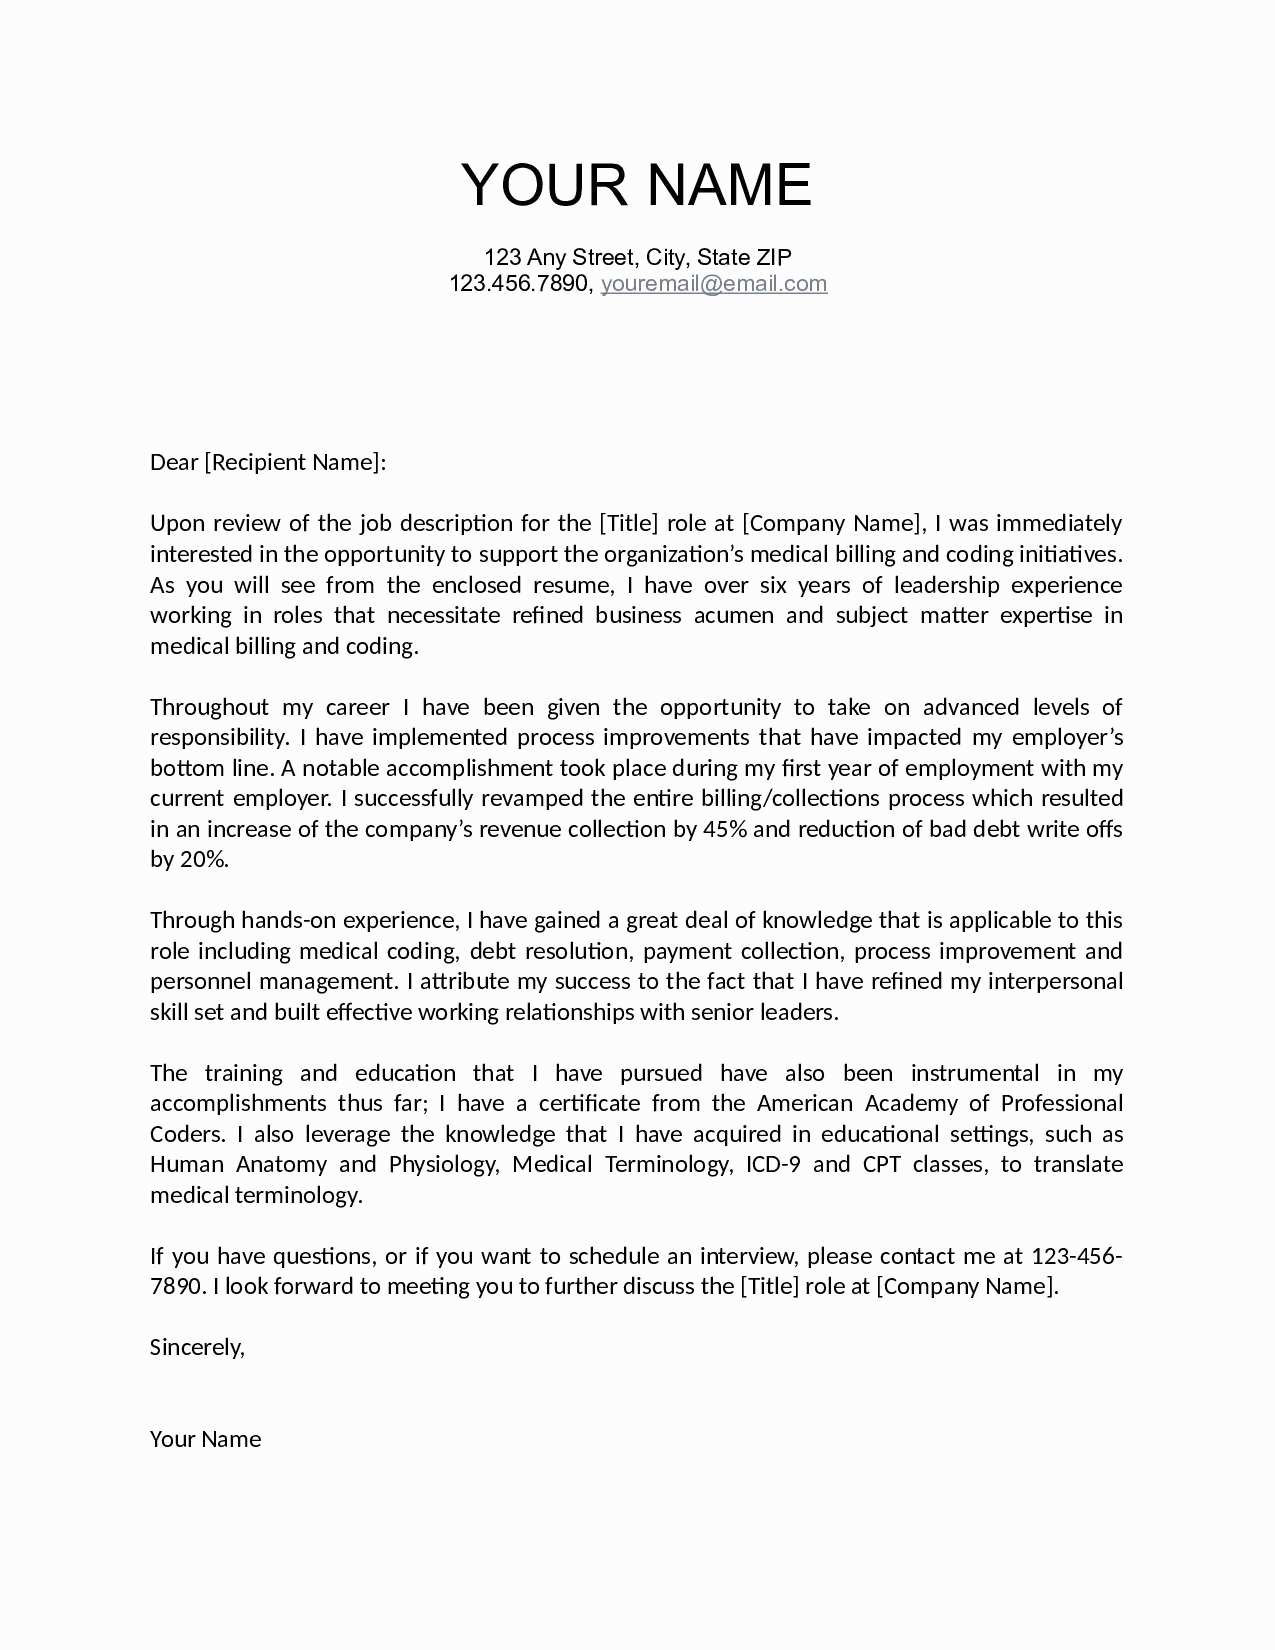 Opt Offer Letter Template - Beautiful Resume and Cover Letter Template